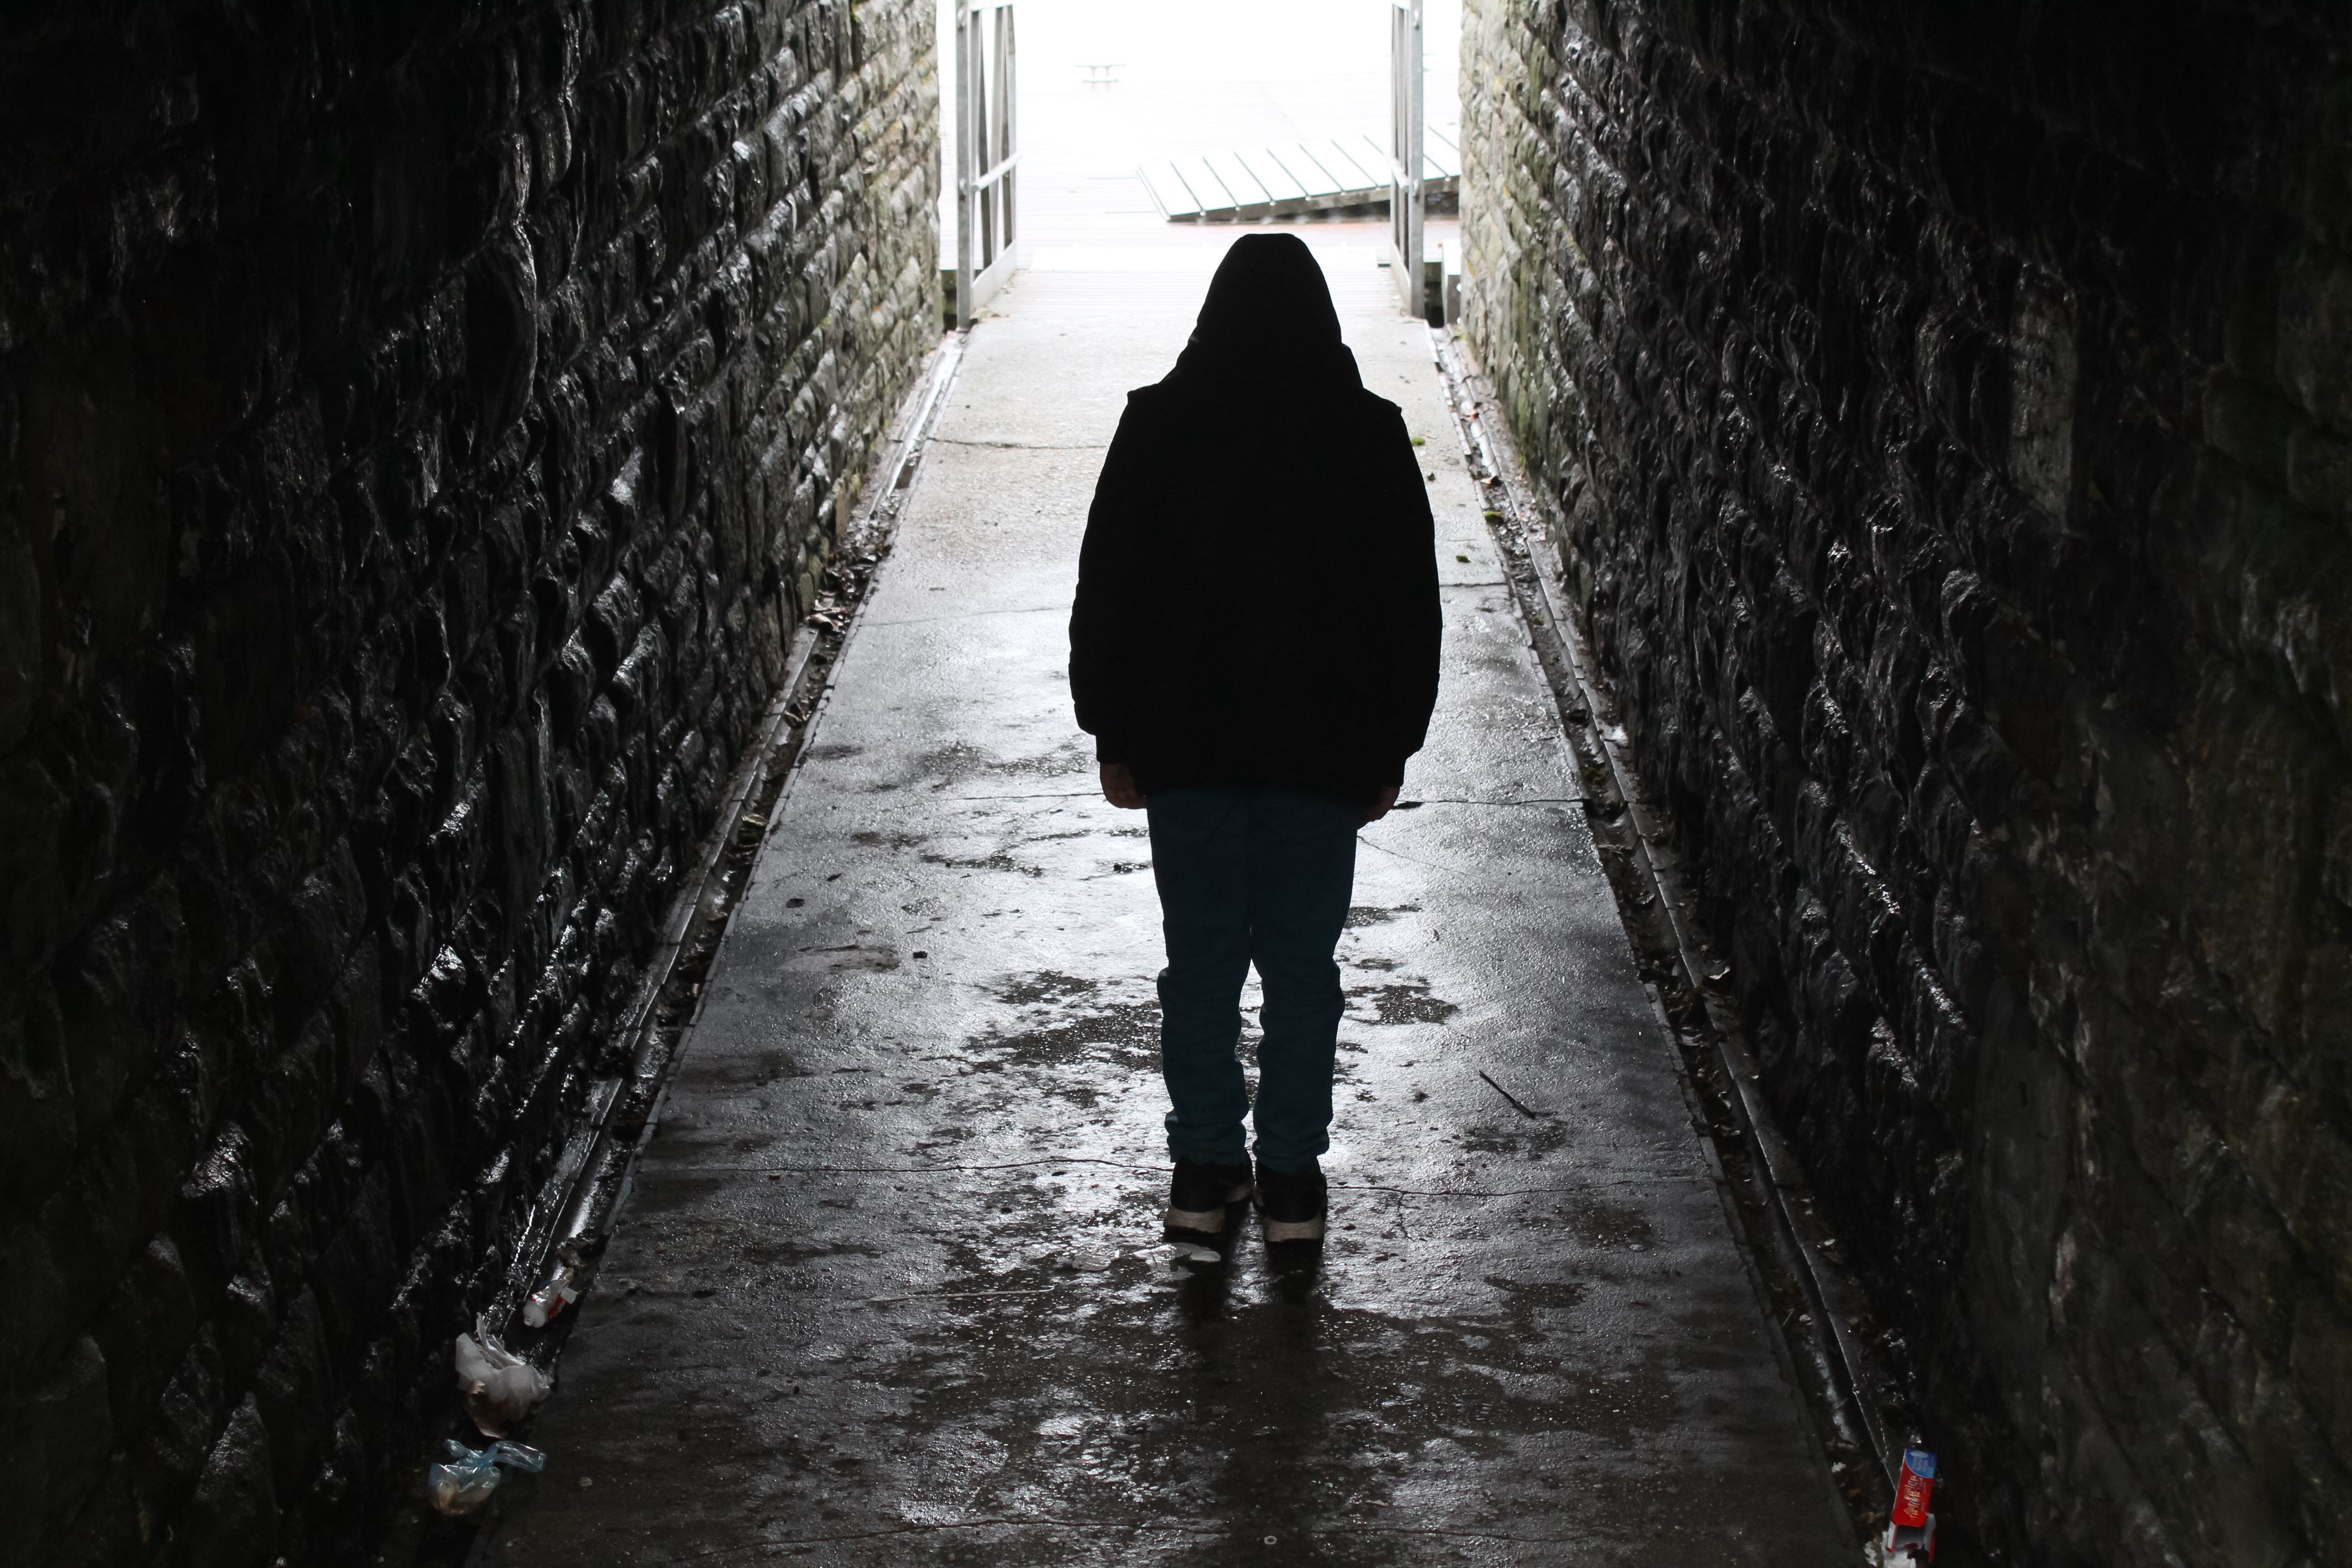 homelessness can often be the door into a life of sex trafficking.